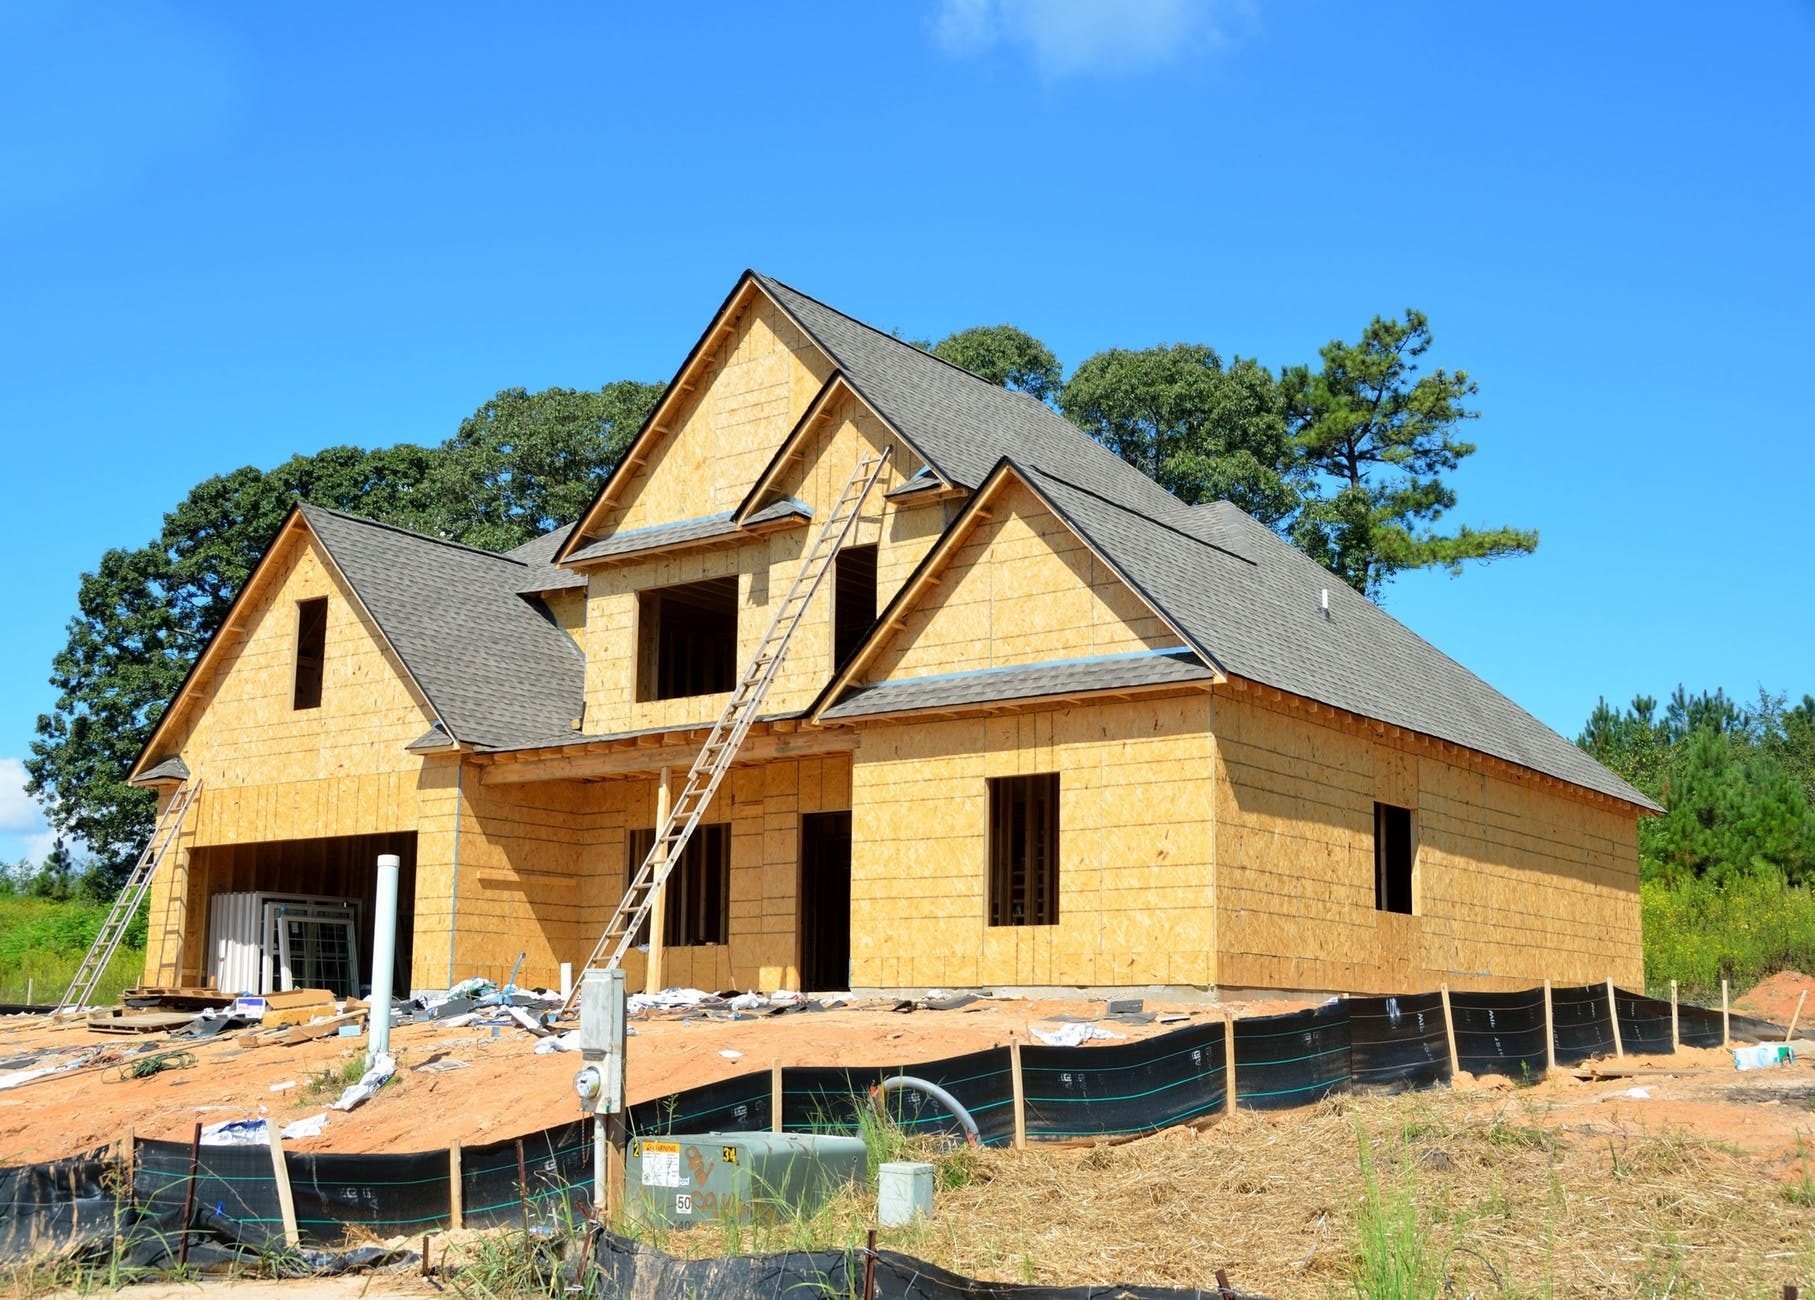 4 Ways To Save Money On A Construction Project